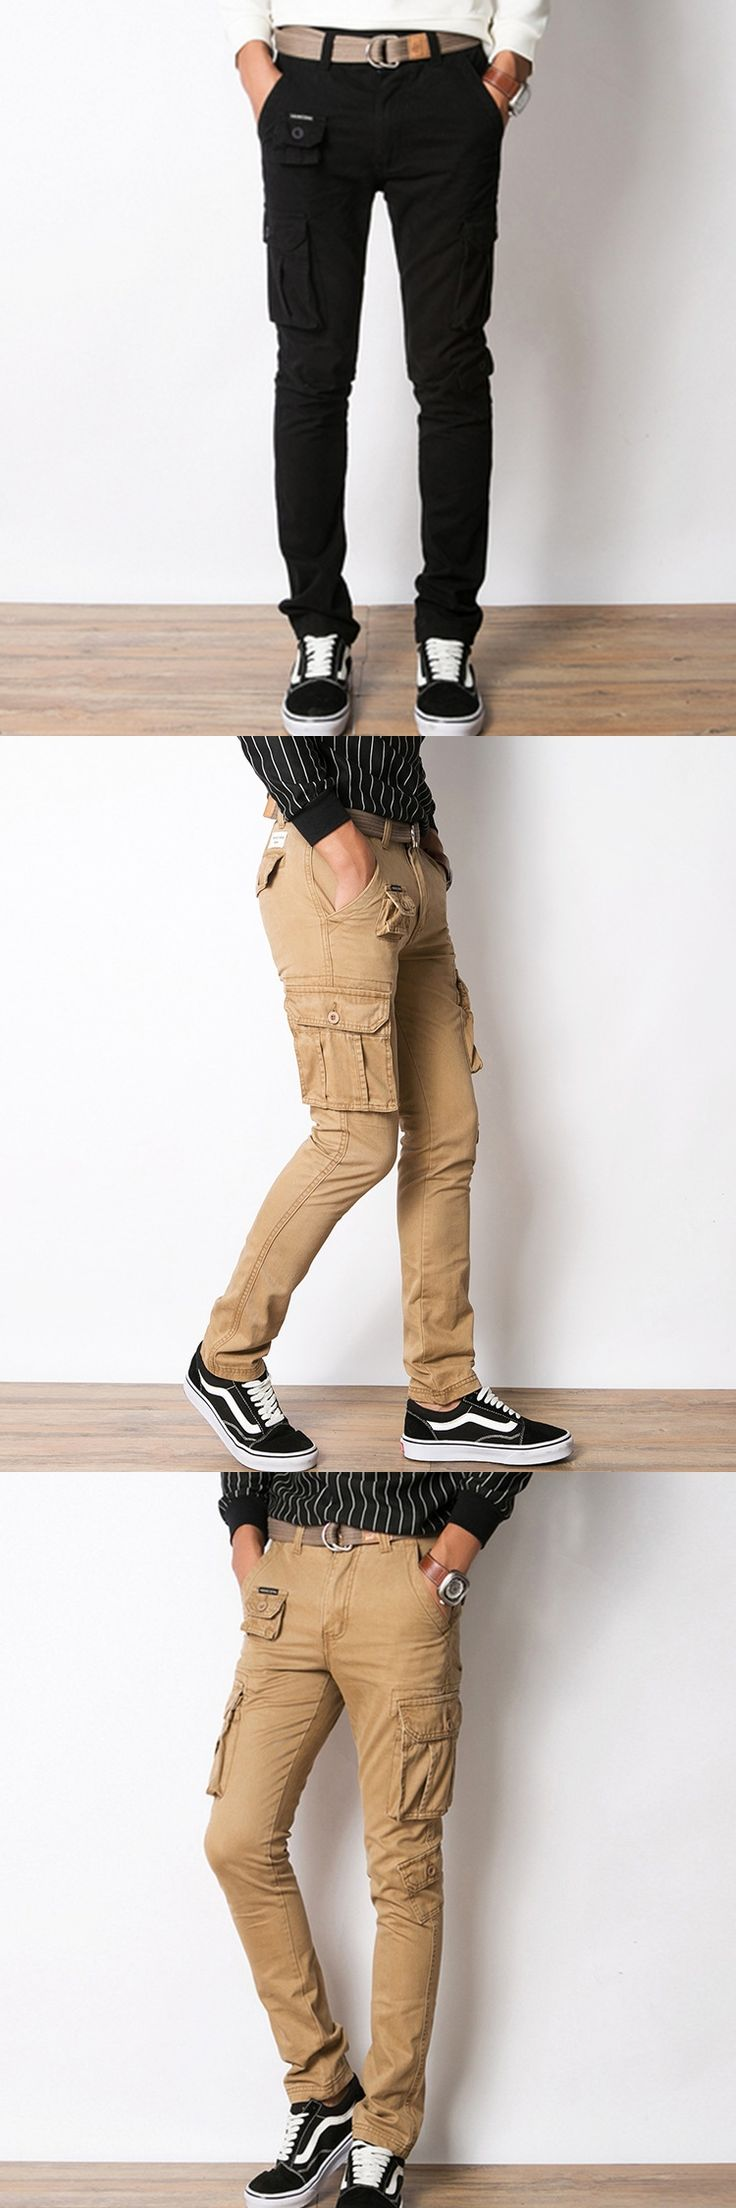 Mens Cargo Pants Slim Straight Black Khaki Army Green Multi Pocket Military 100% Cotton Casual Pants Chinos Long Trousers 203